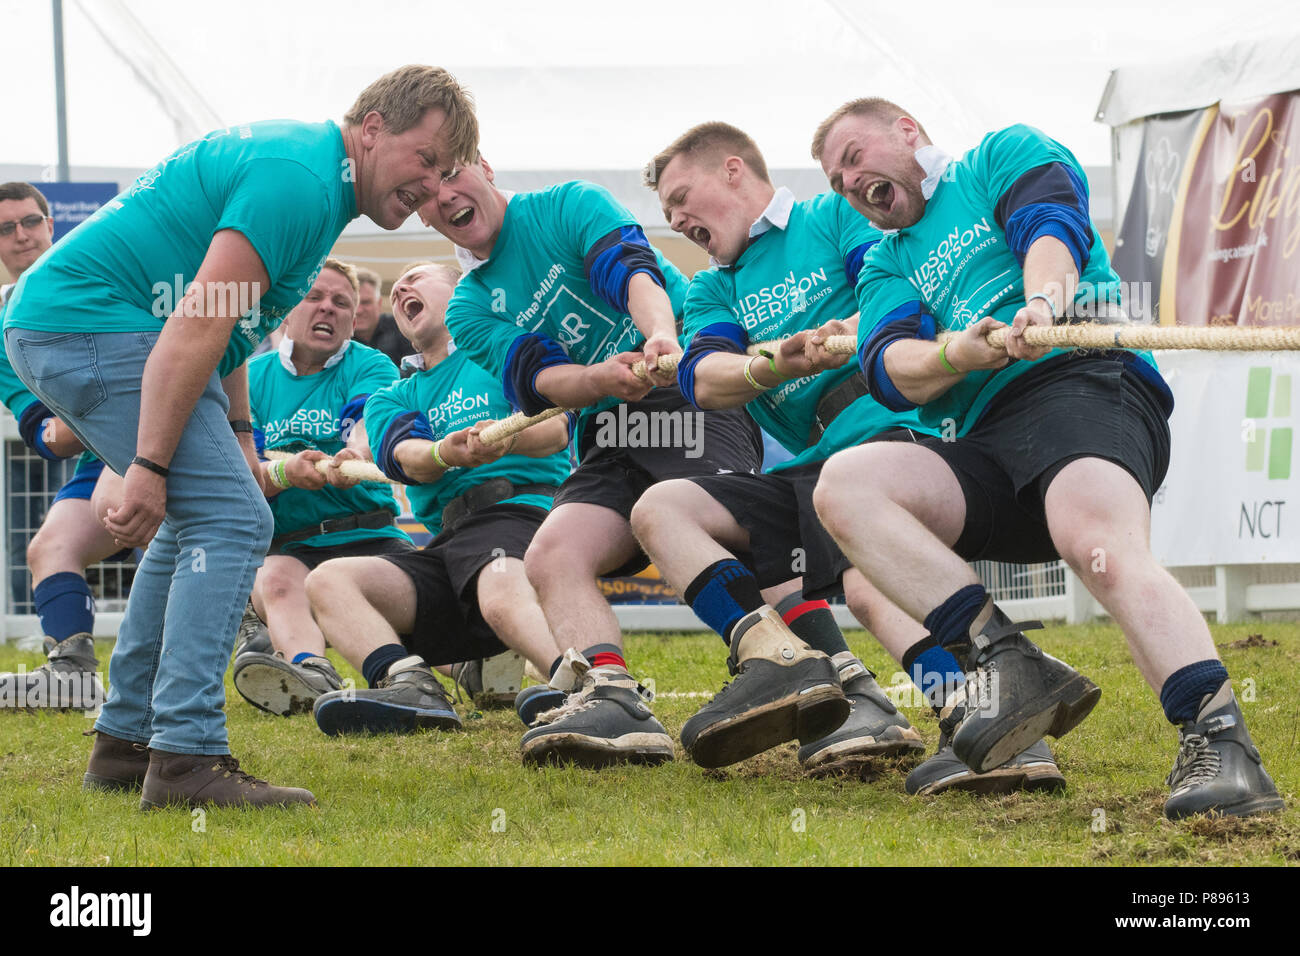 tug of war competition at the Royal Highland Show - Strathearn JAC young farmers team competing at the Royal Highland Show, Edinburgh, Scotland, UK - Stock Image